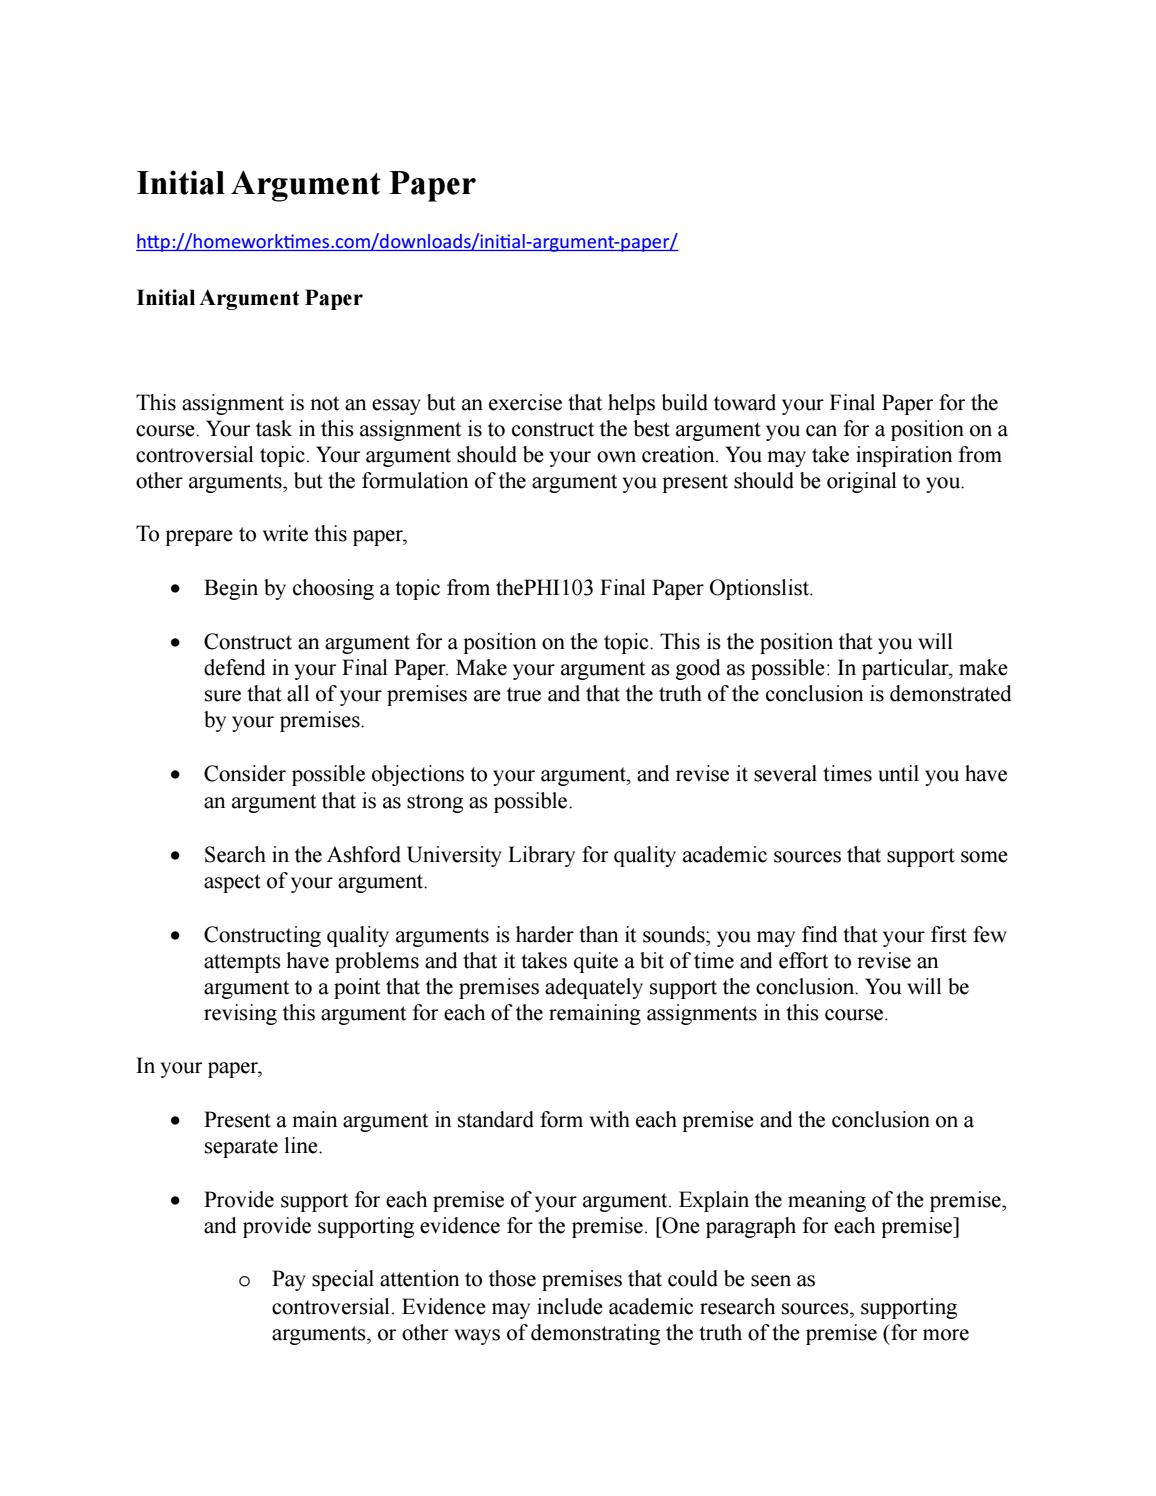 initial argument paper by gloriya devin